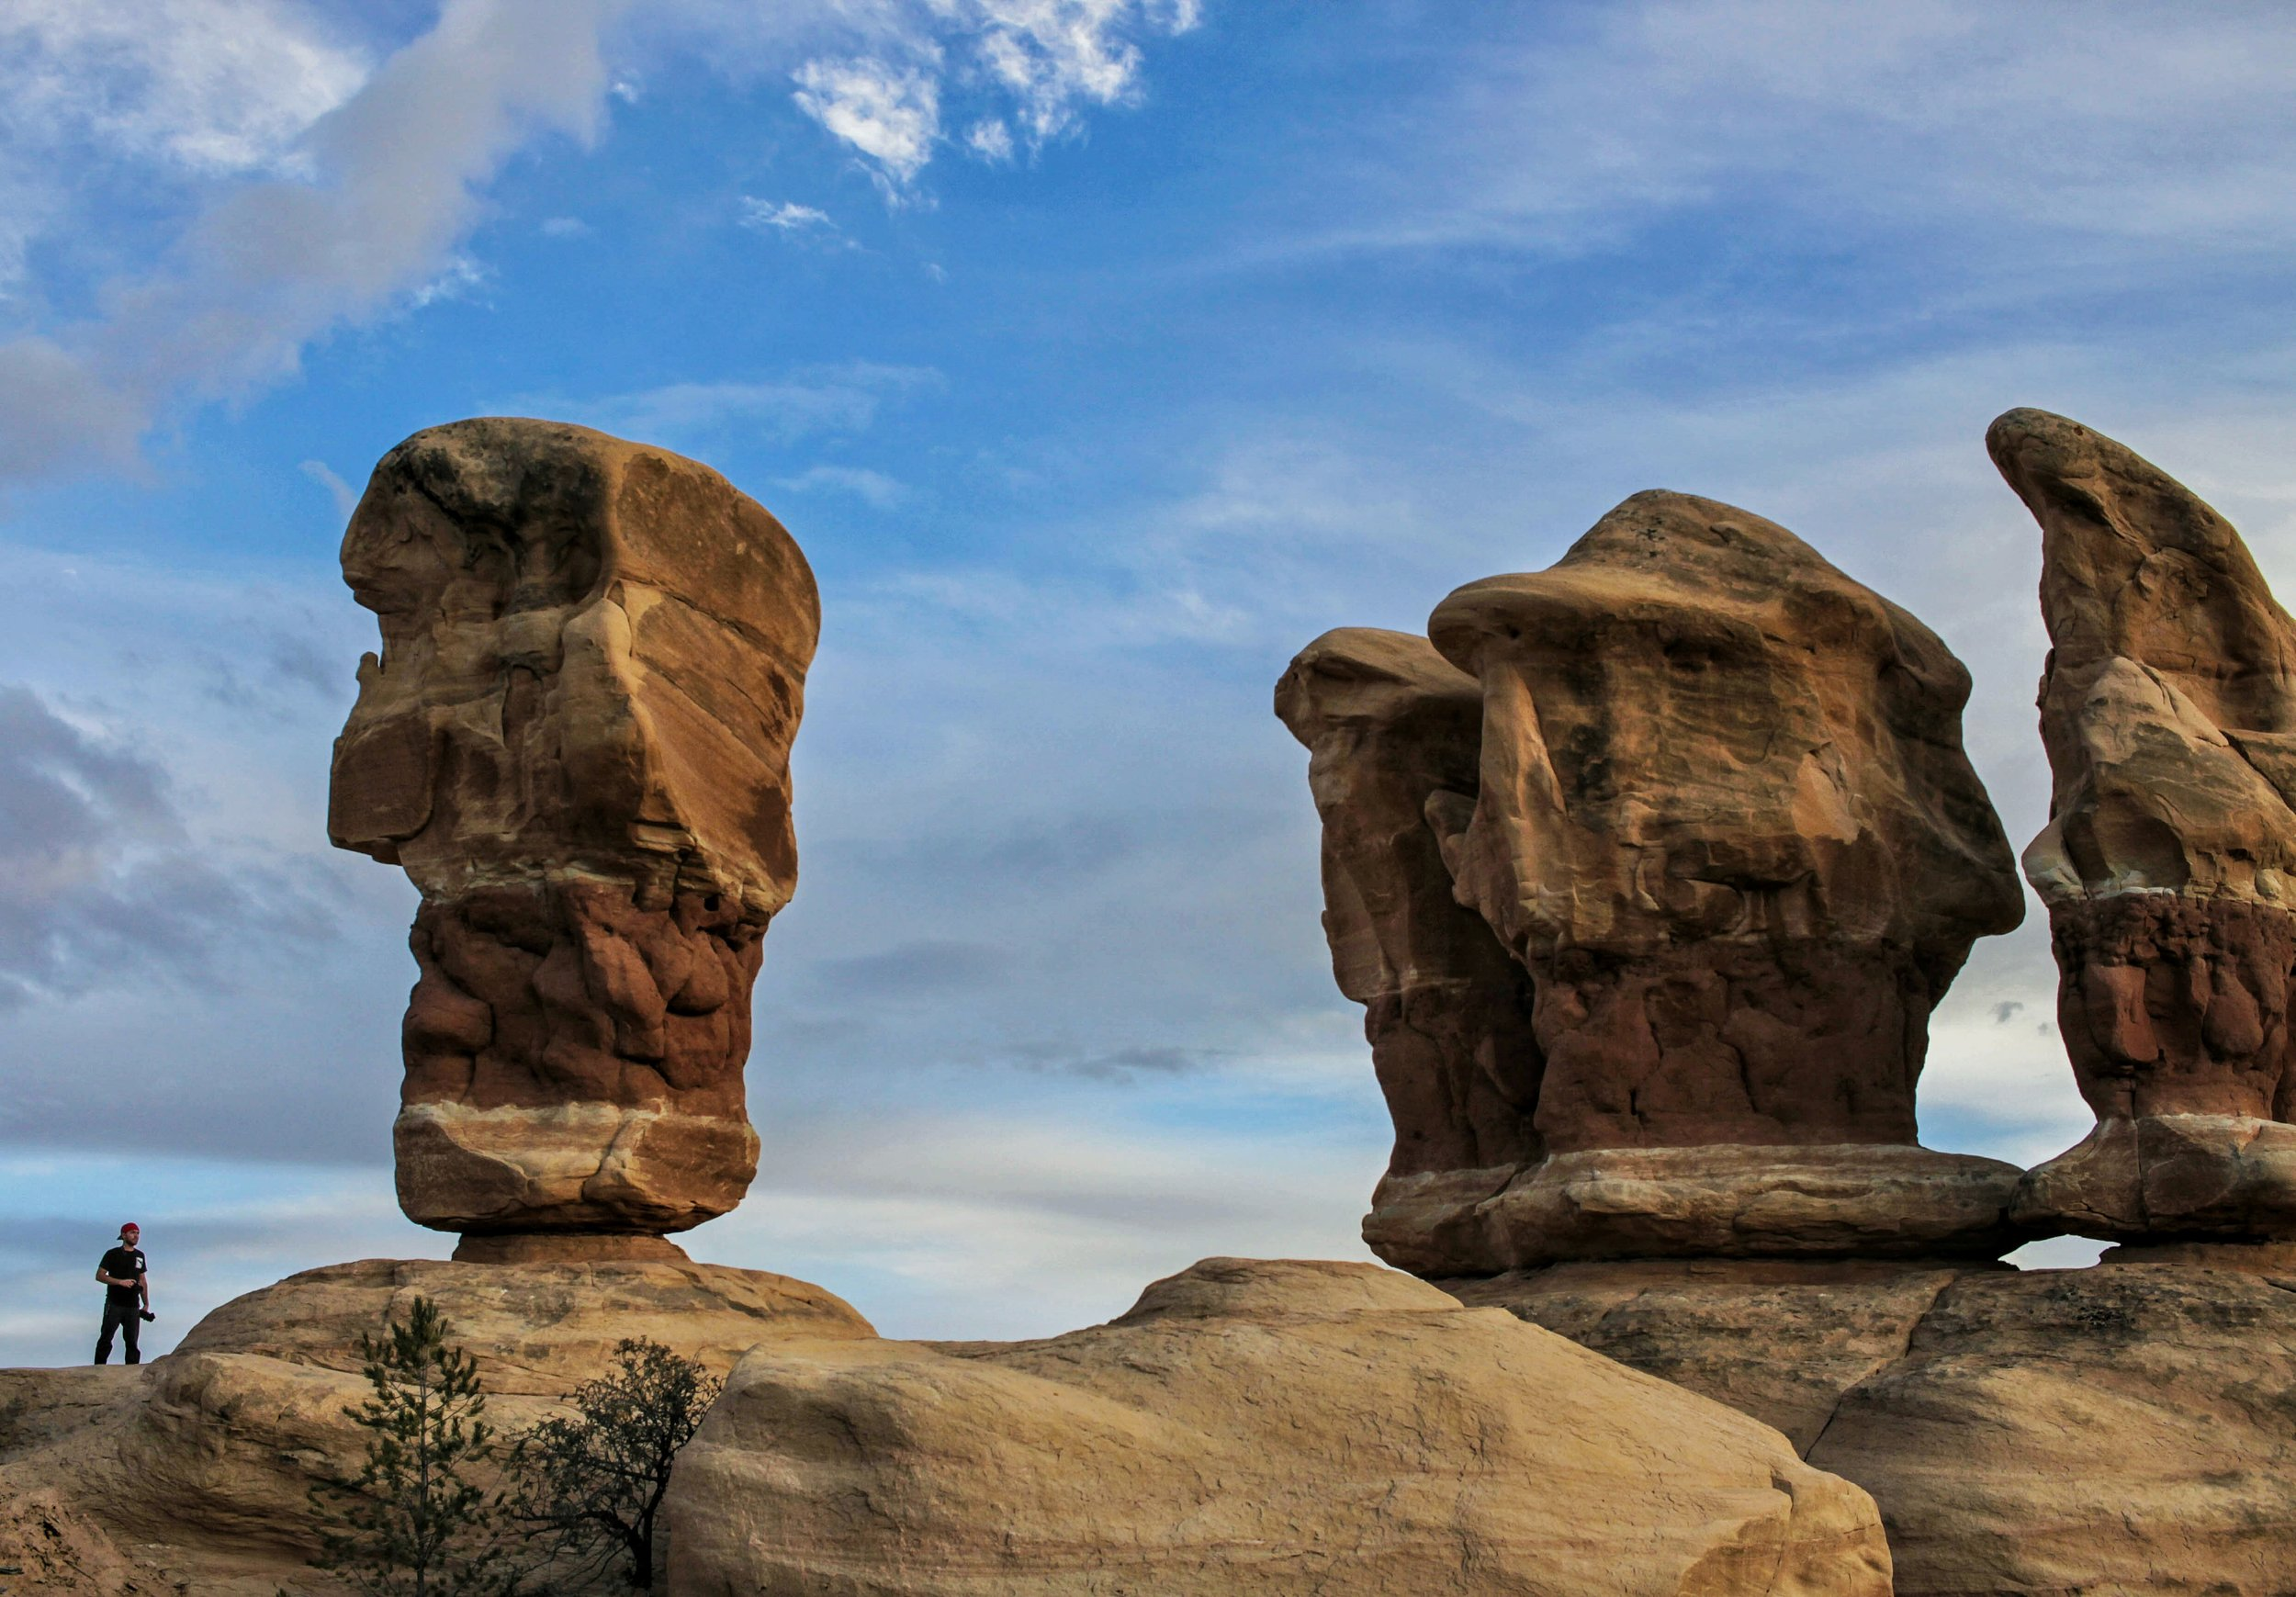 Some of Utah's Greatest gems like Escelante, Monument Valley & Dead Horse Point are all Monuments or State Parks.